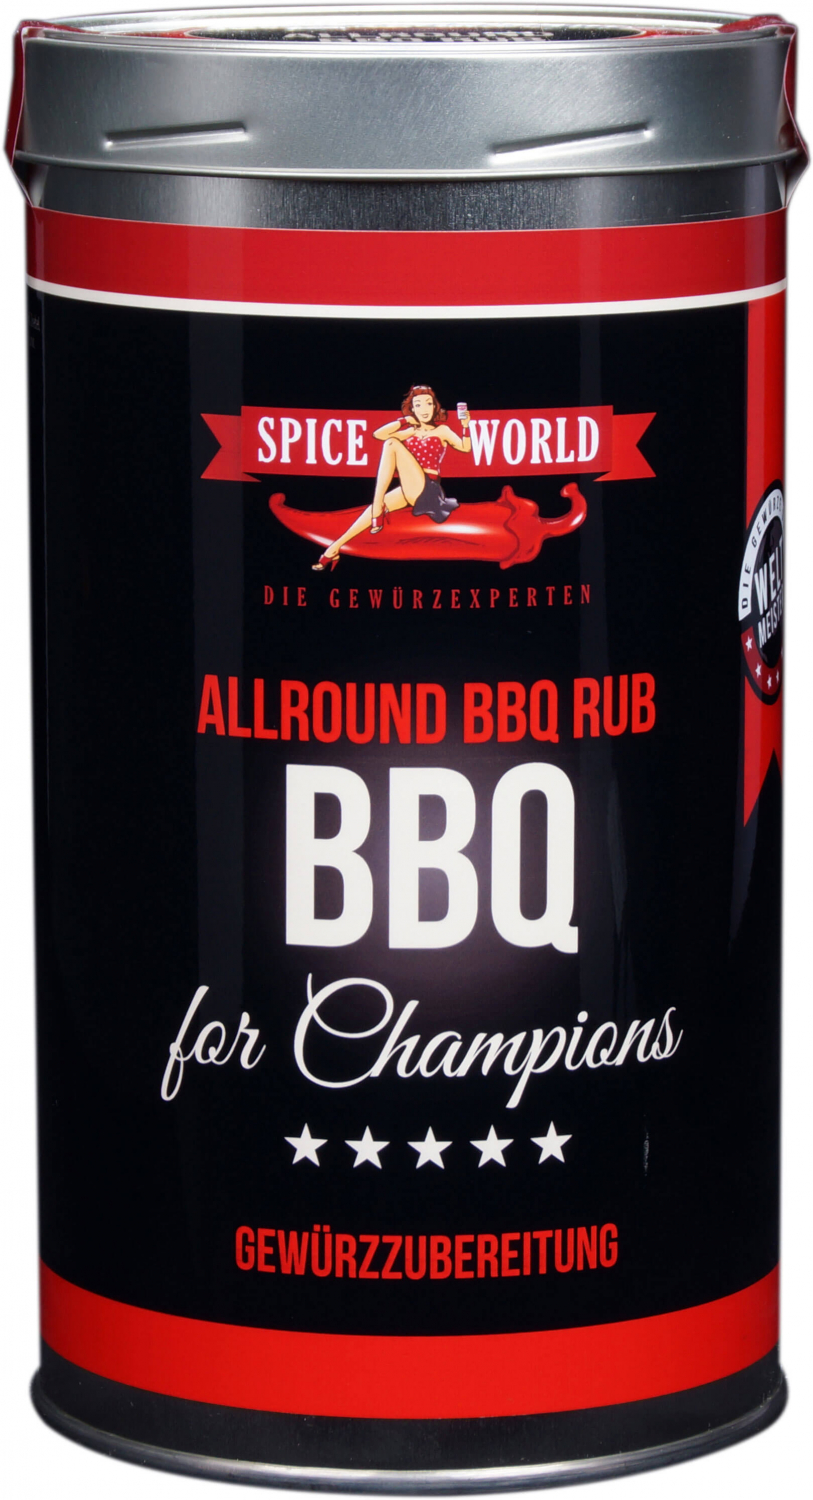 Barbecue-for-Champions - Allround BBQ Rub Gewürzzubereitung , 550ml Gastro-Dose 1333ml Gastro-Dose